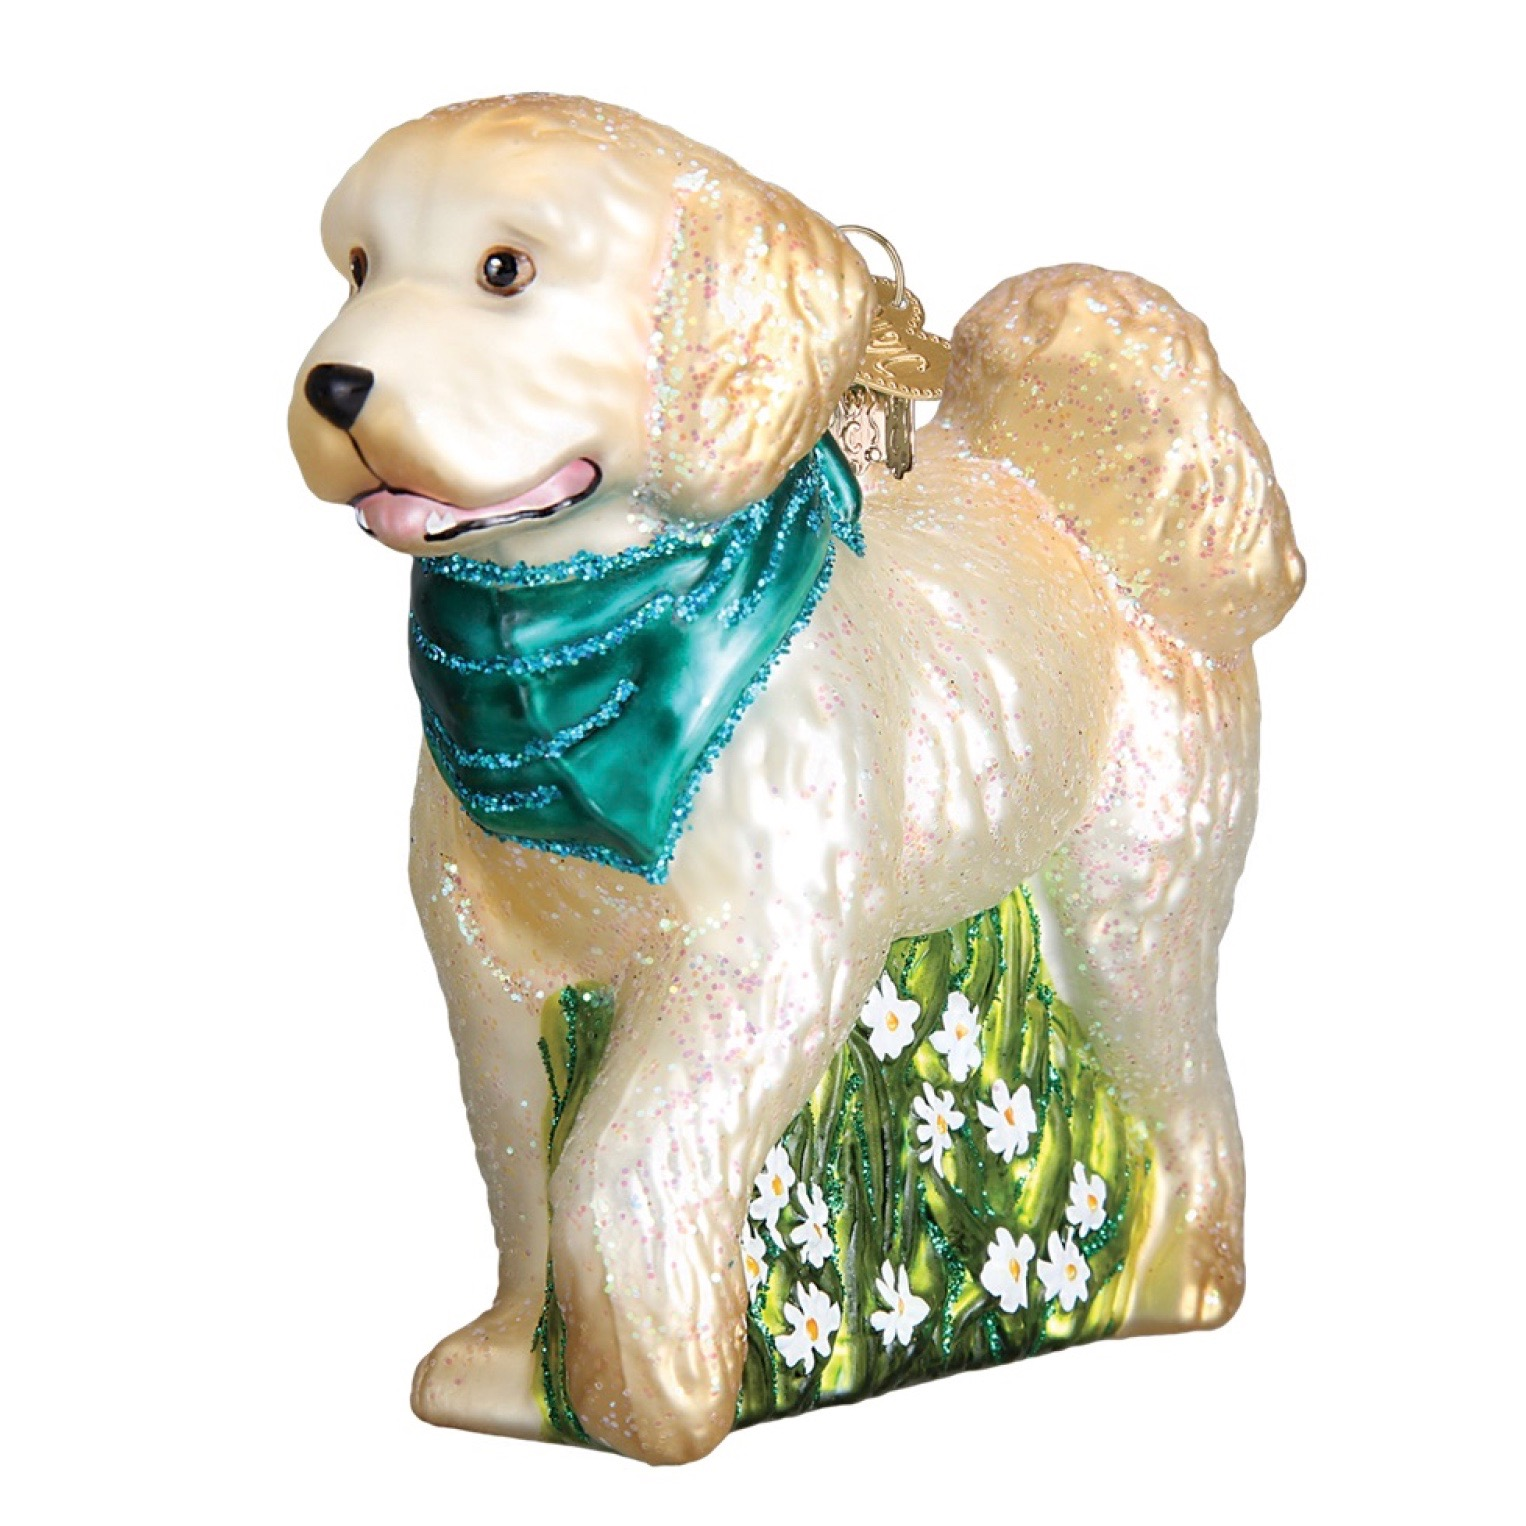 Dog Ornaments & Decorations